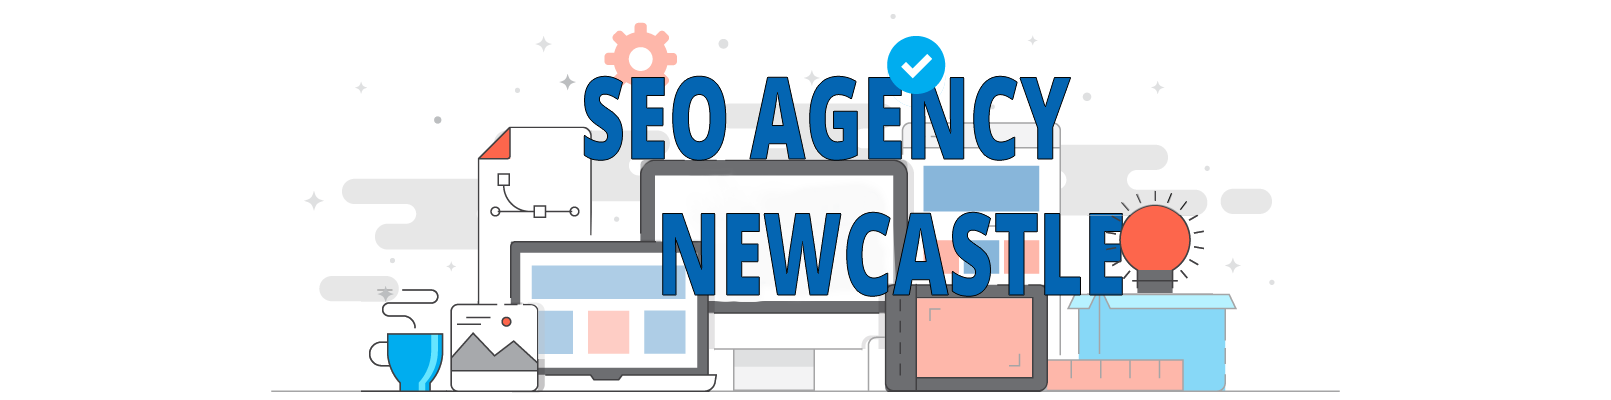 SEO Agency Newcastle To Increase Traffic For Your Business